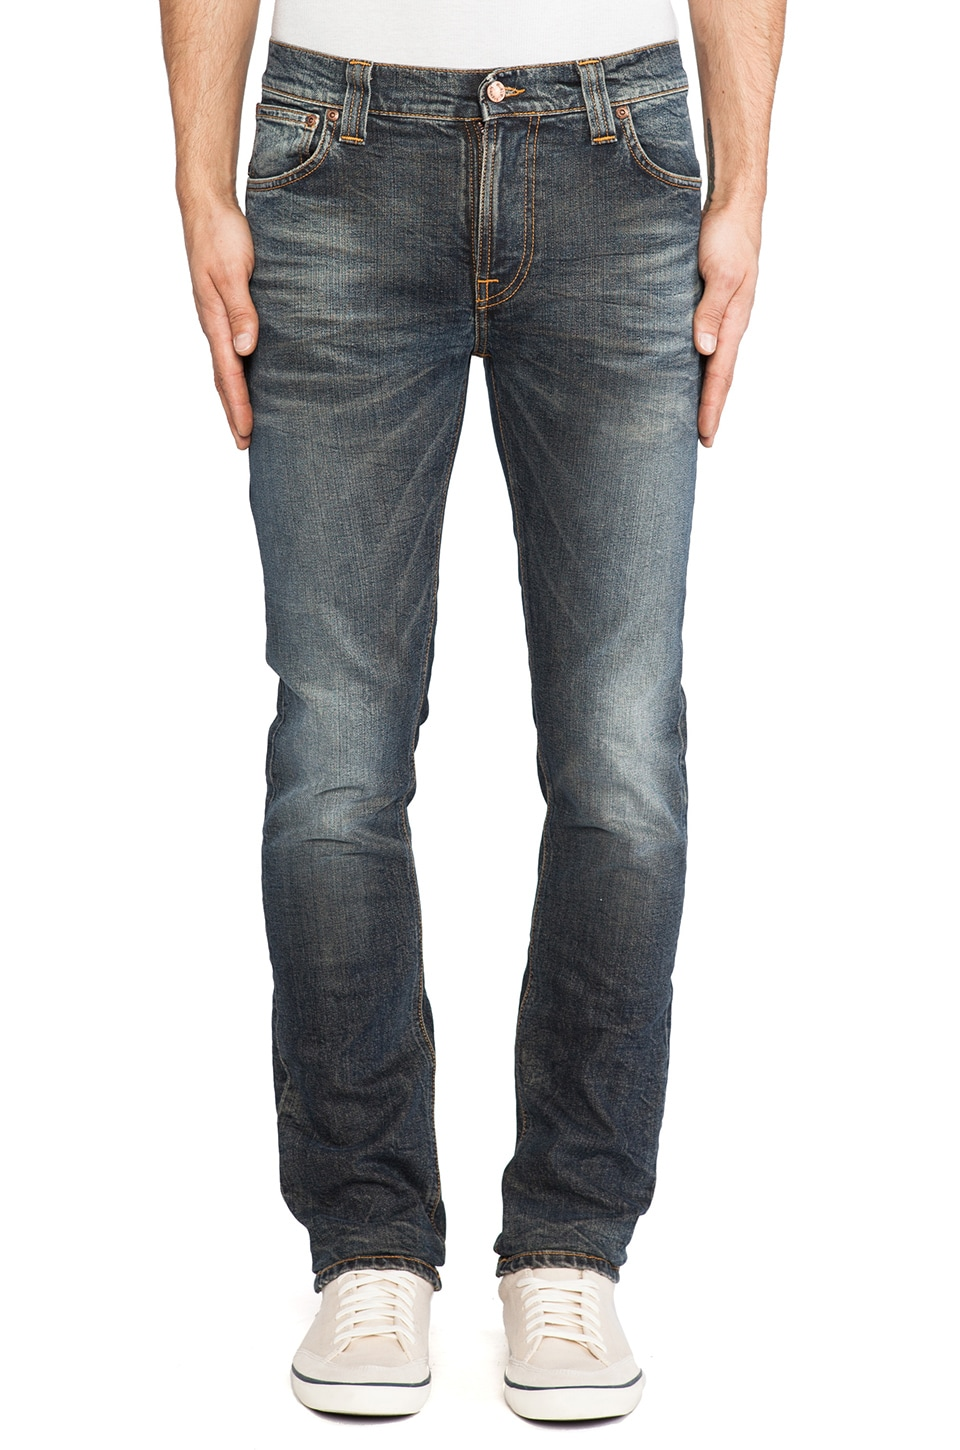 Nudie Jeans Thin Finn in Org. Dark Frost